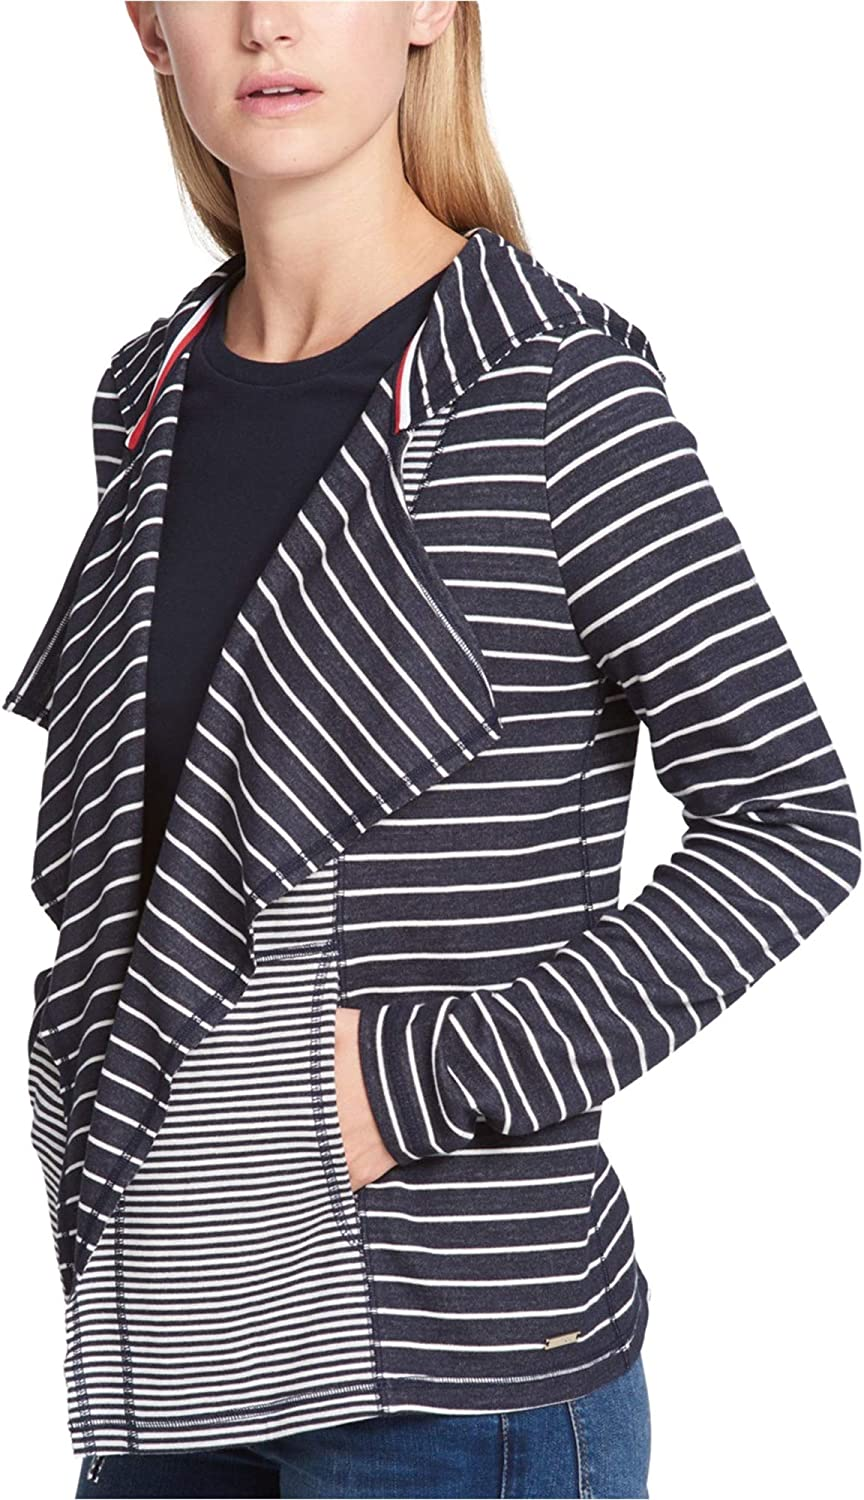 Tommy Max 82% OFF Hilfiger Womens store Hooded Sweater Cardigan